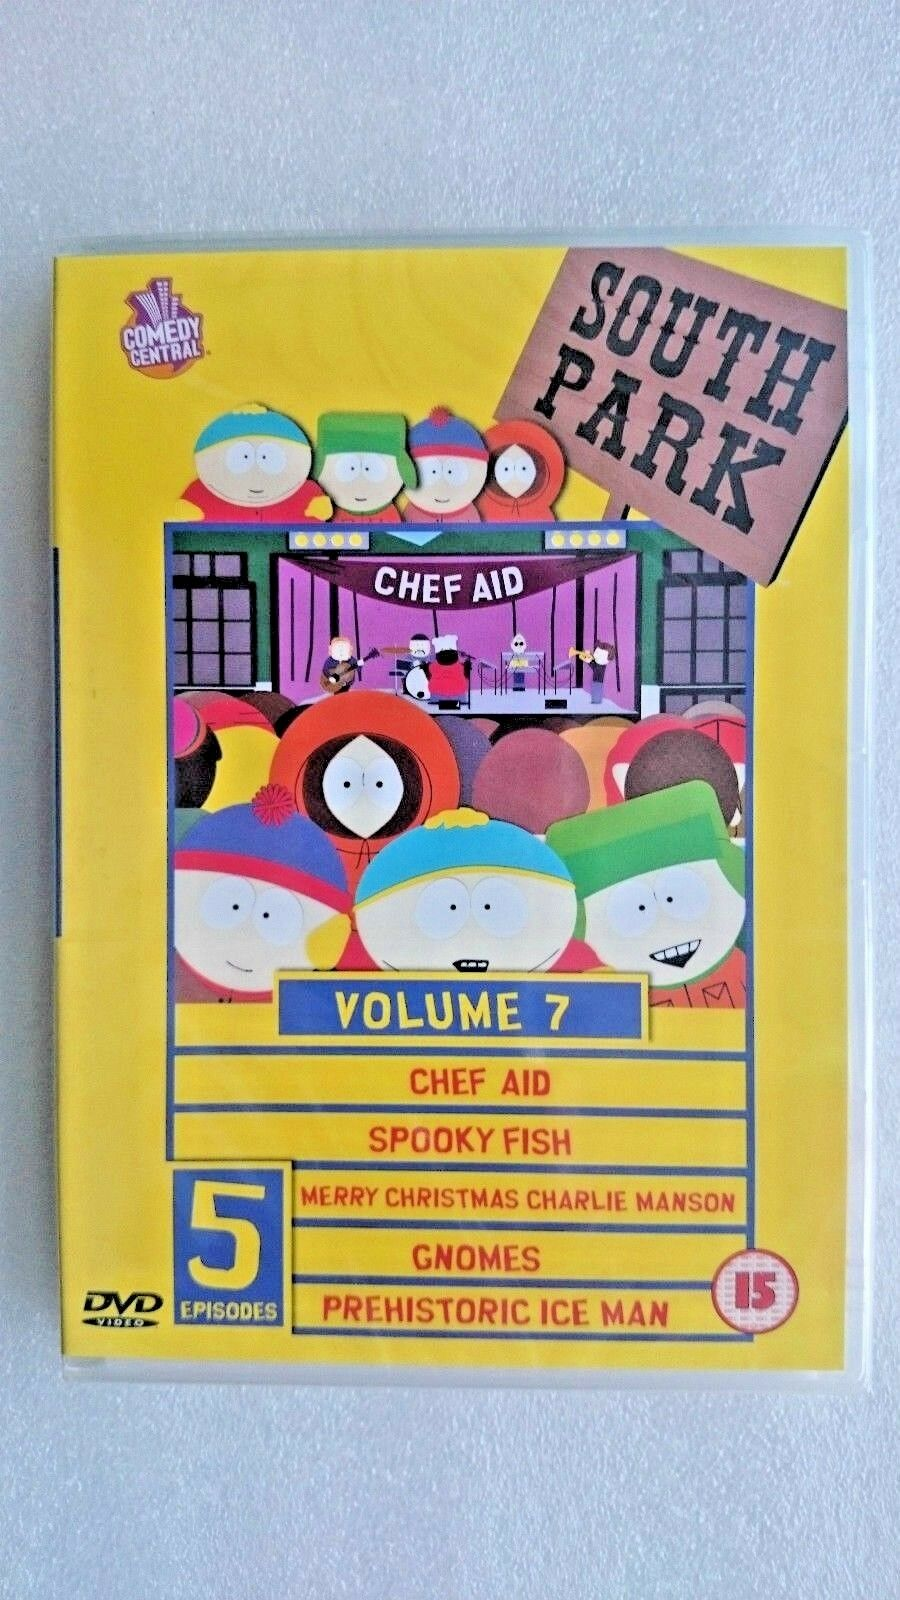 South Park Vol.7 (DVD, 2000) - NEW and SEALED